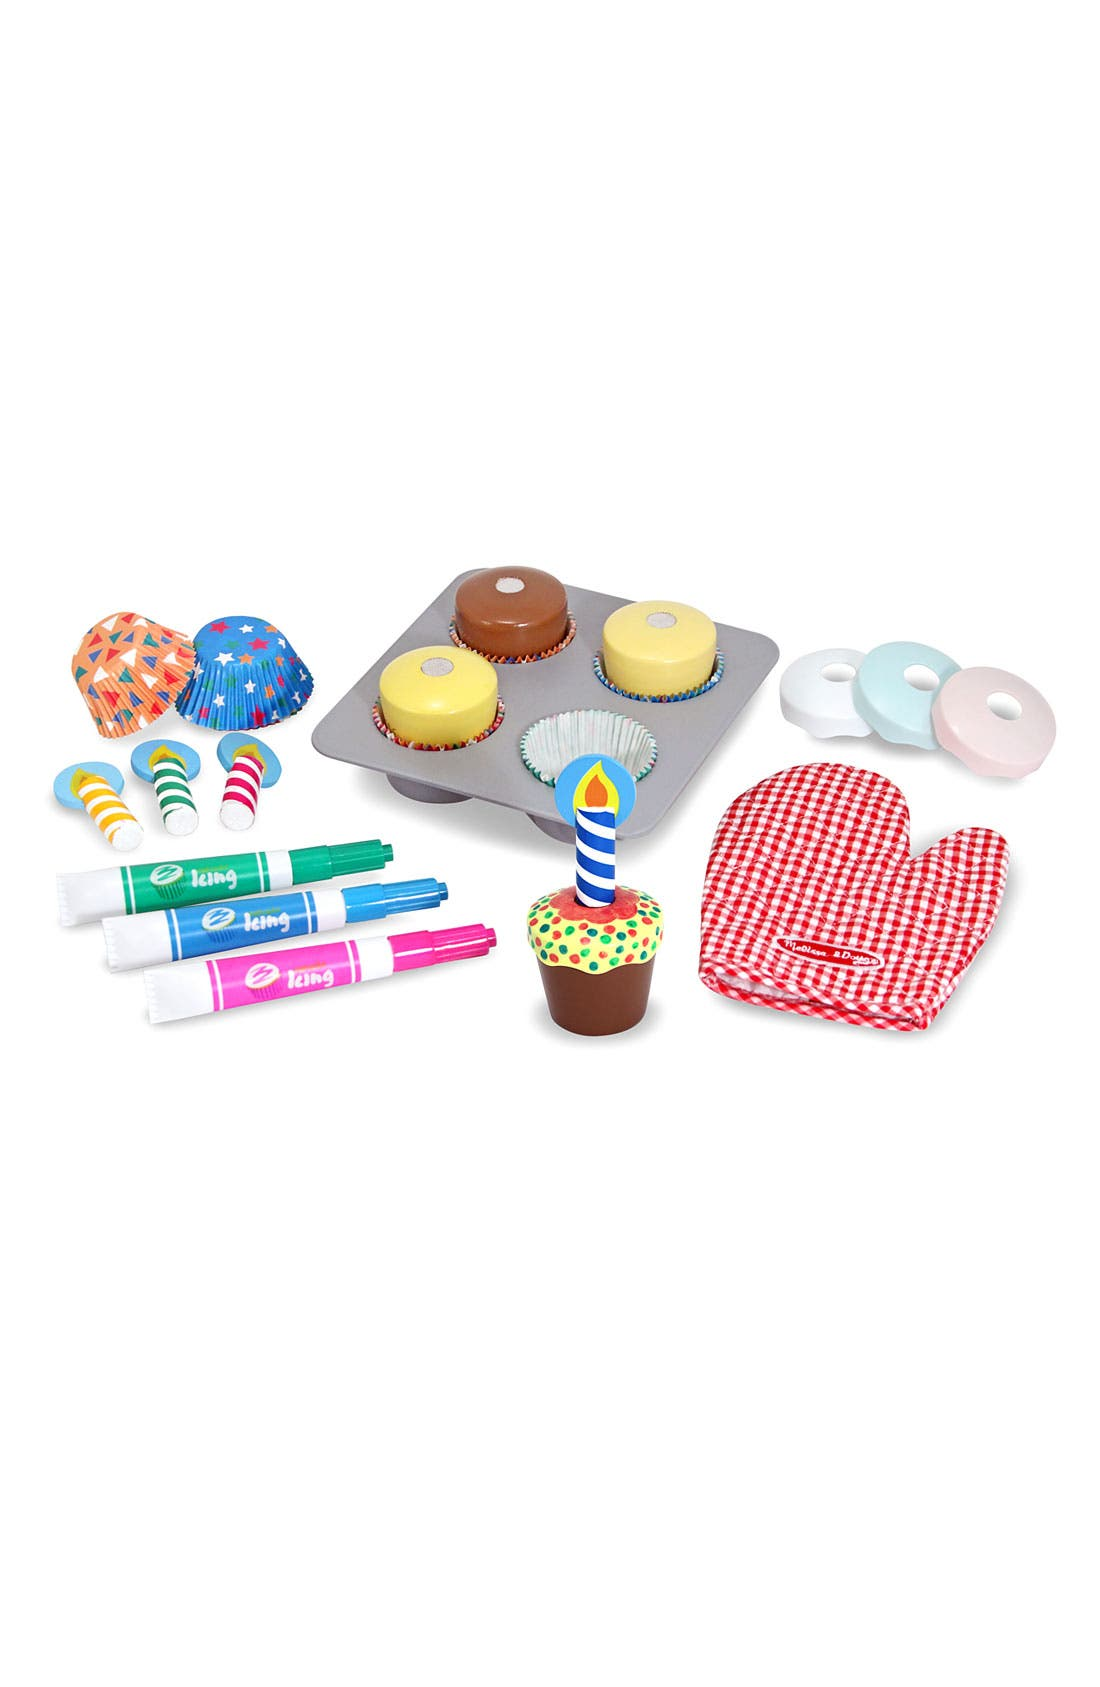 Main Image - Melissa & Doug Toy Cupcake Set